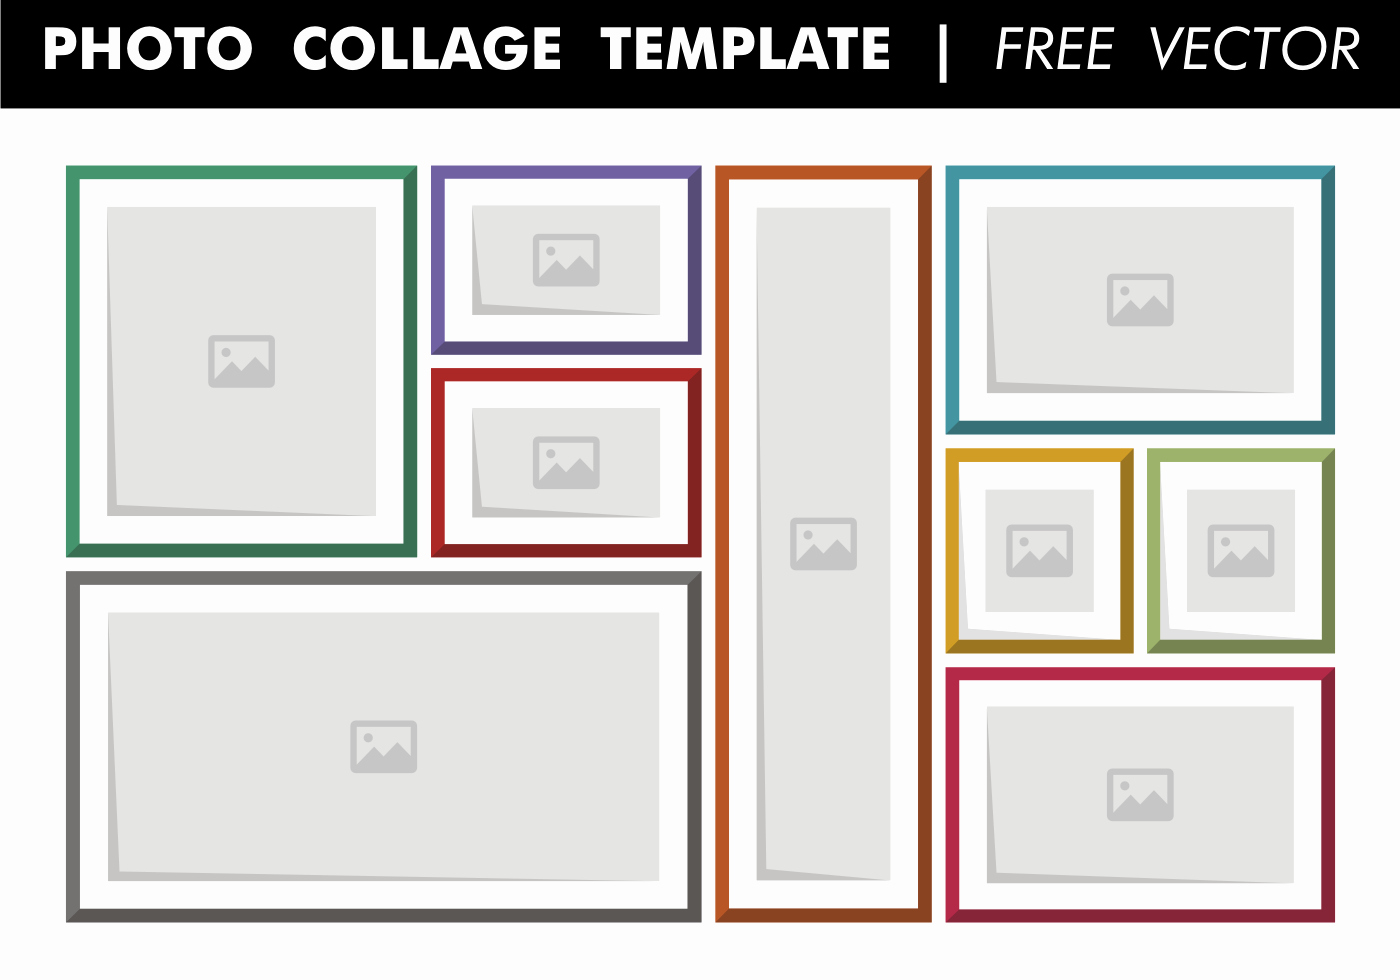 Microsoft Word Photo Collage Template New Collage Template Free Vector Download Free Vector